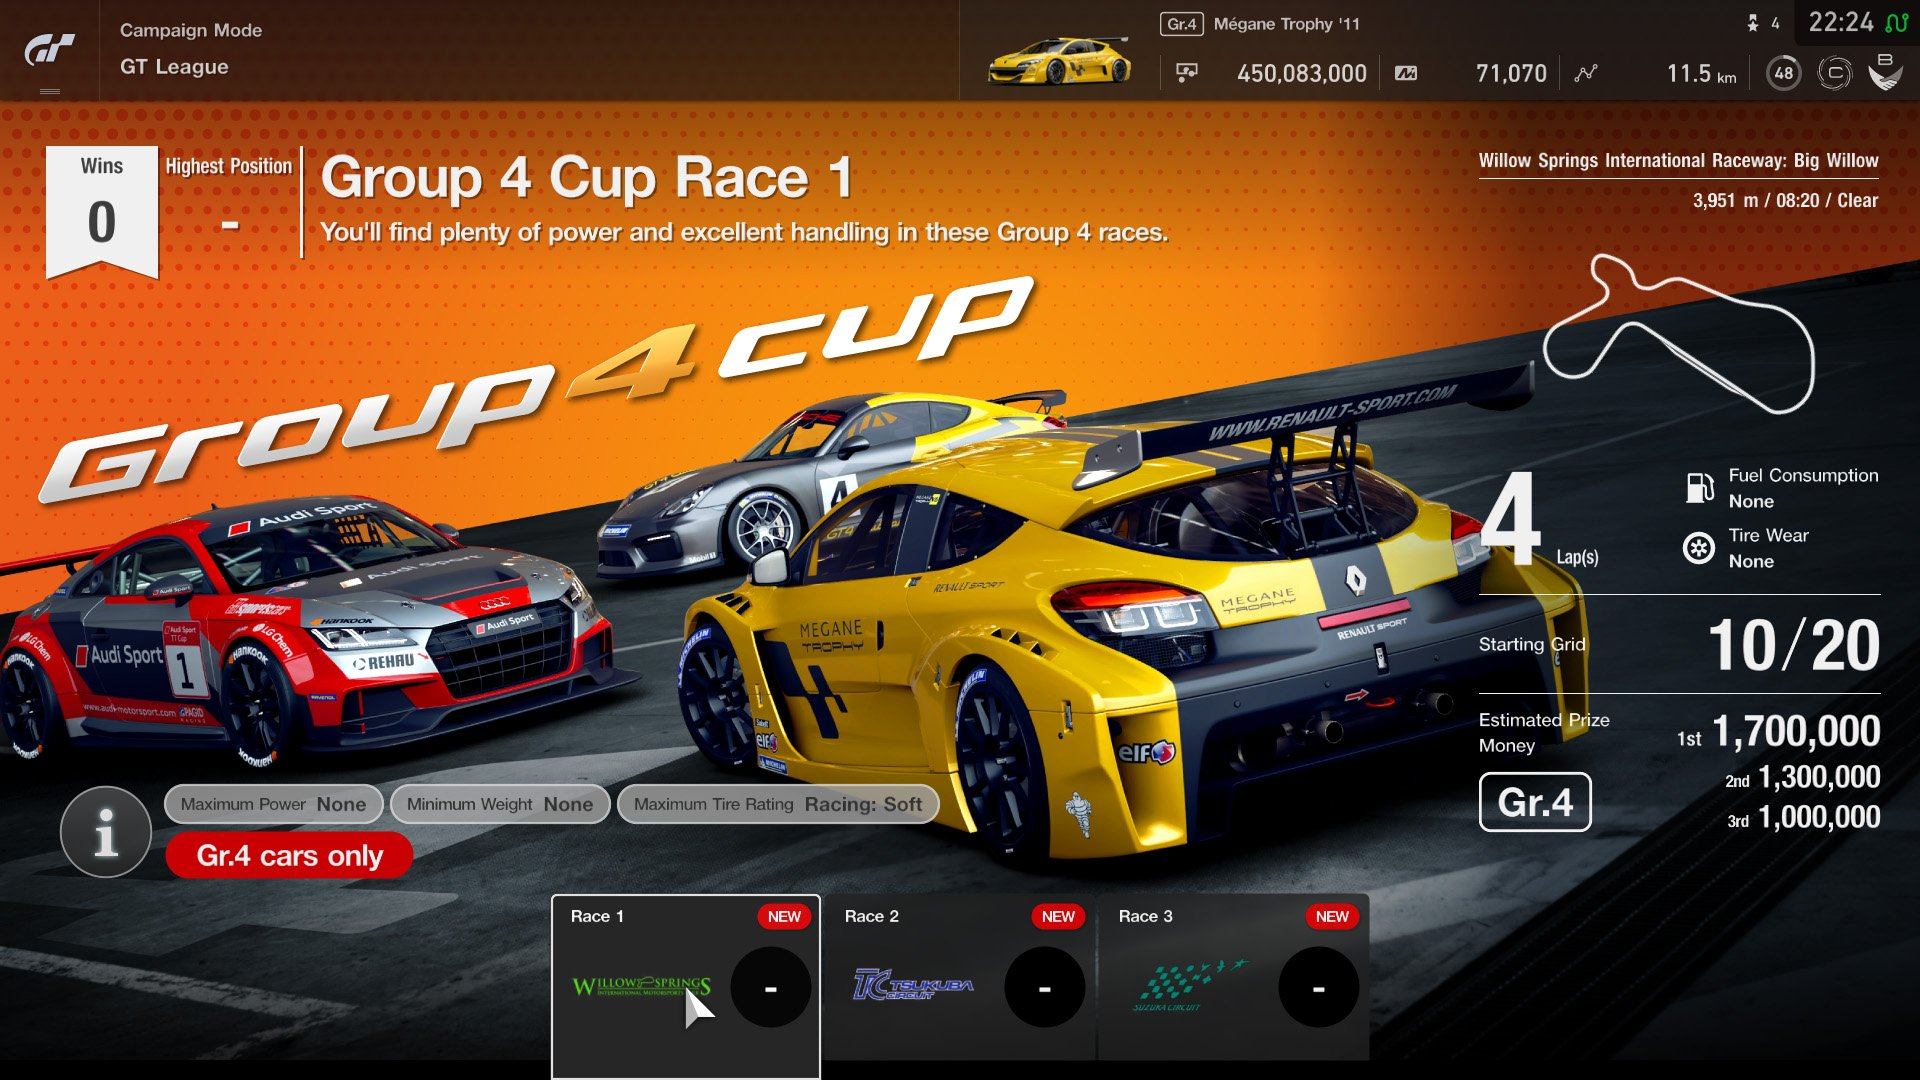 Gran Turismo Sport May update GT League event 1